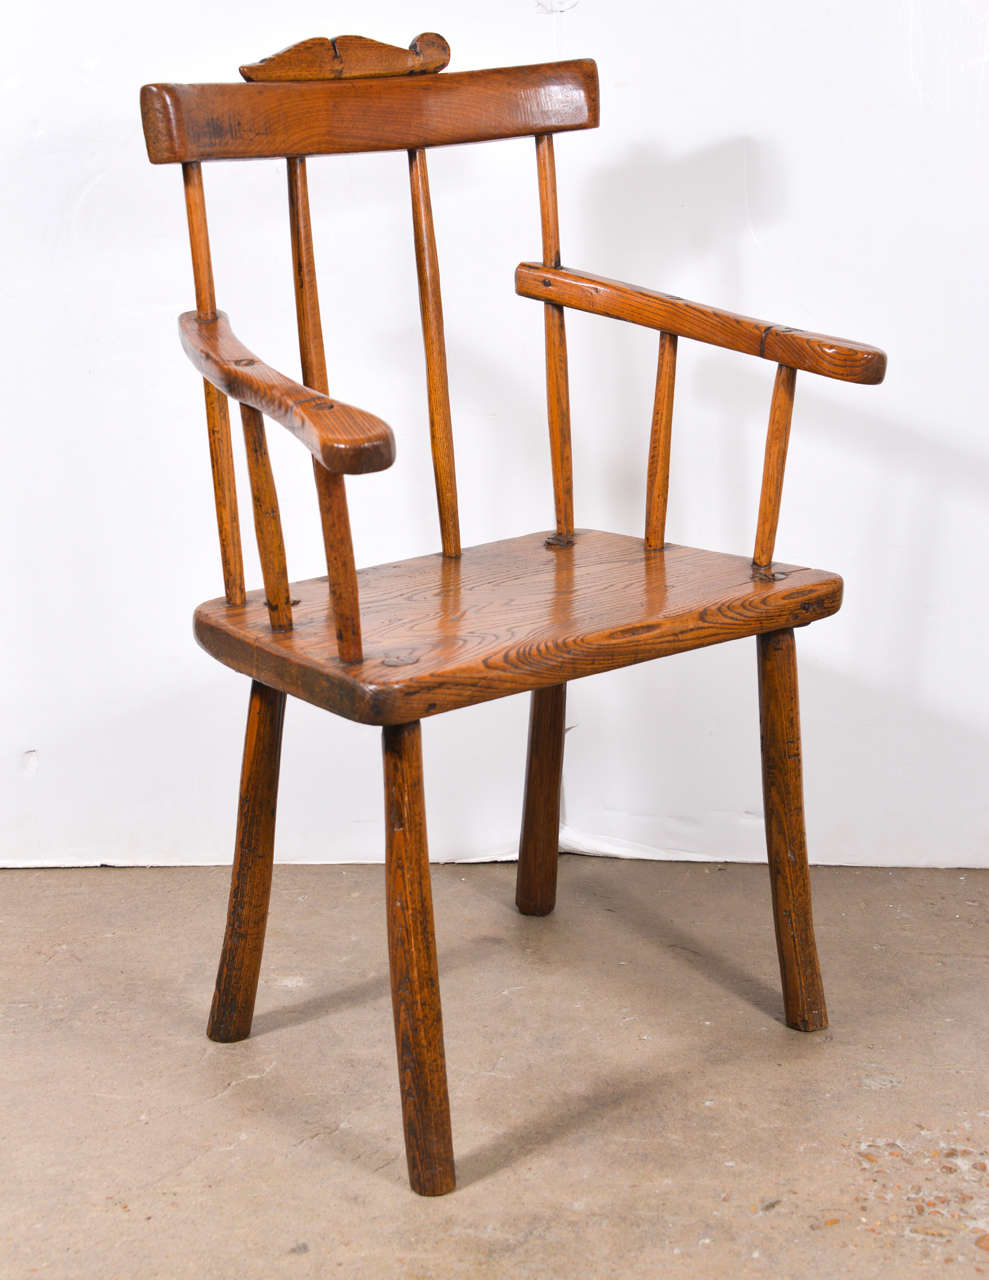 Primitive 18th Century Folk Art Chair For Sale At 1stdibs